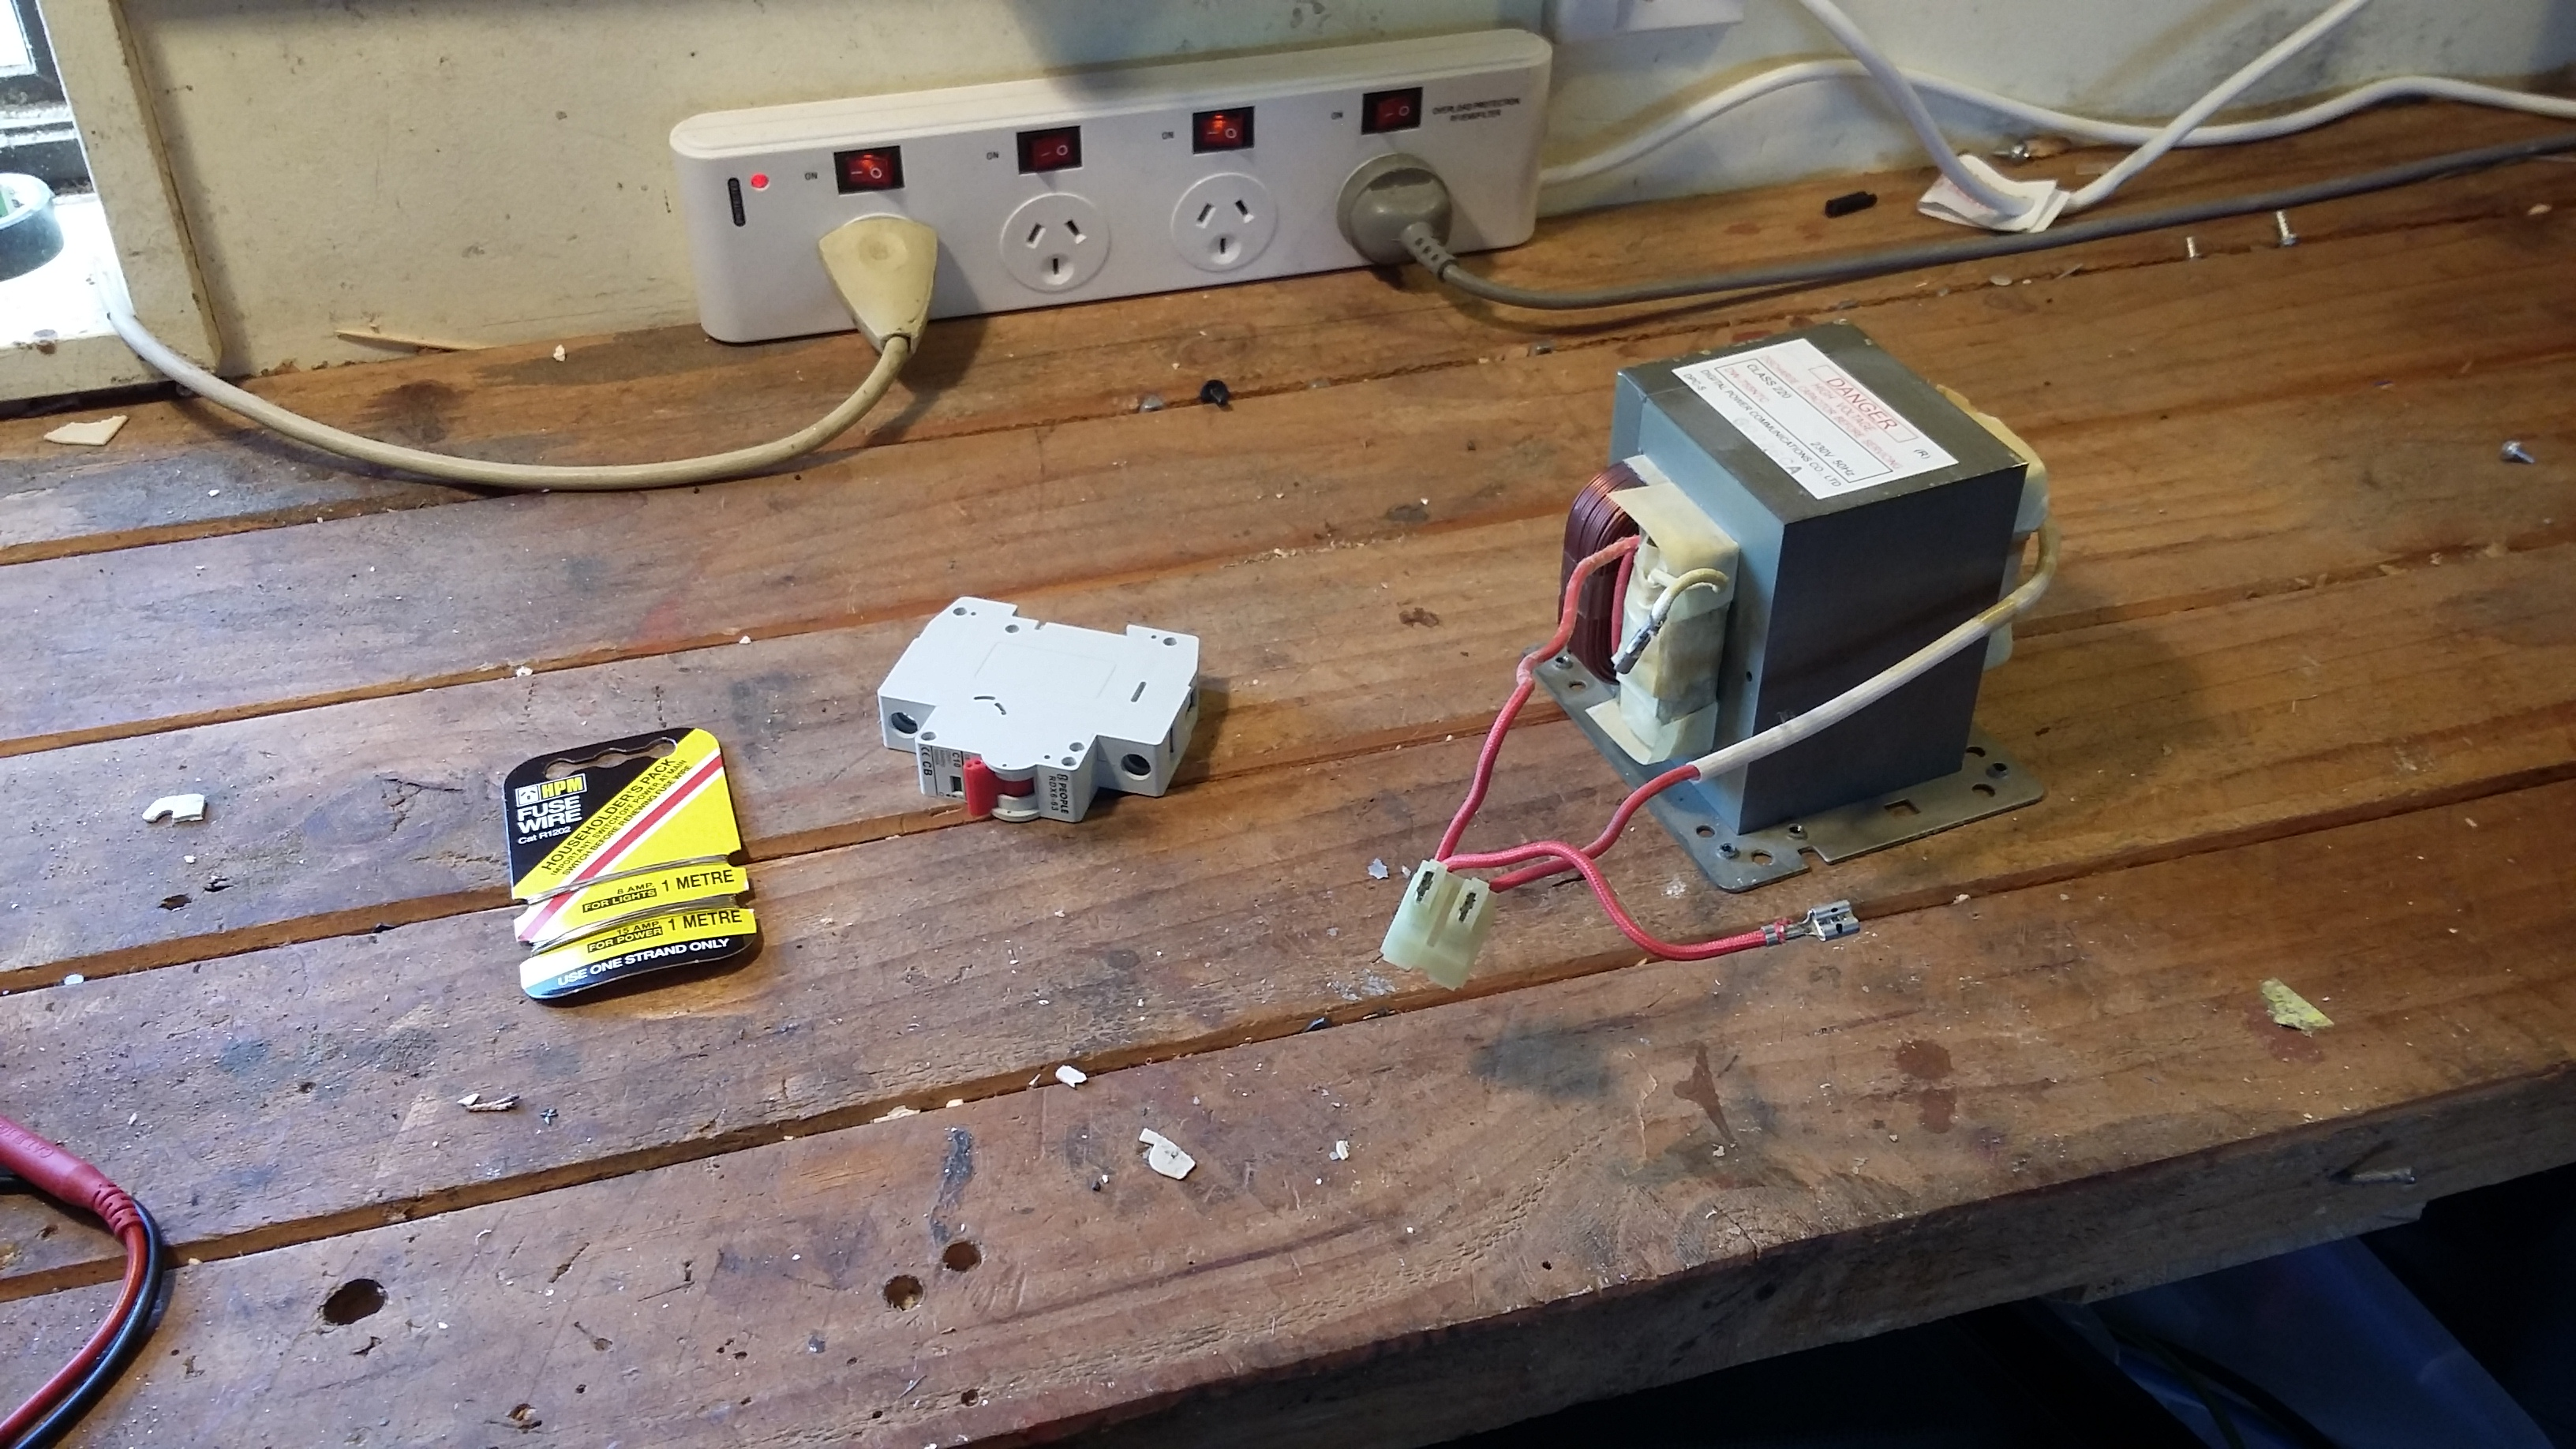 Spot Welder From A Broken Microwave Faulty Circuit Breaker Or Wiring Also Bought